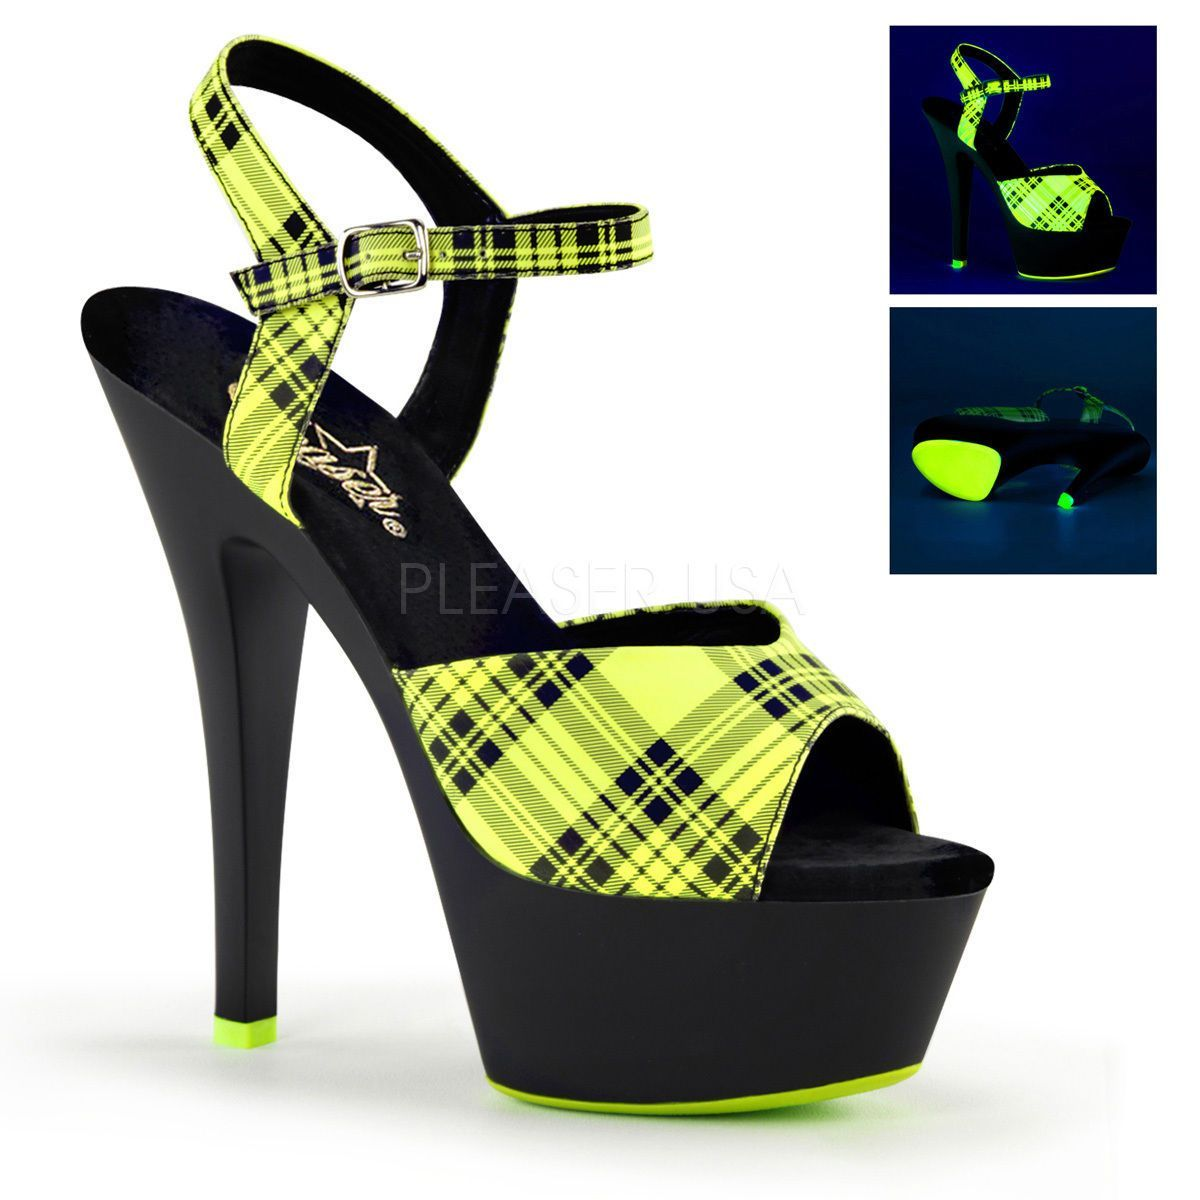 Pleaser Ankle Strap Sandale Uv Backlight Backlight Uv Plaid schwarz Platform Kiss 64c724